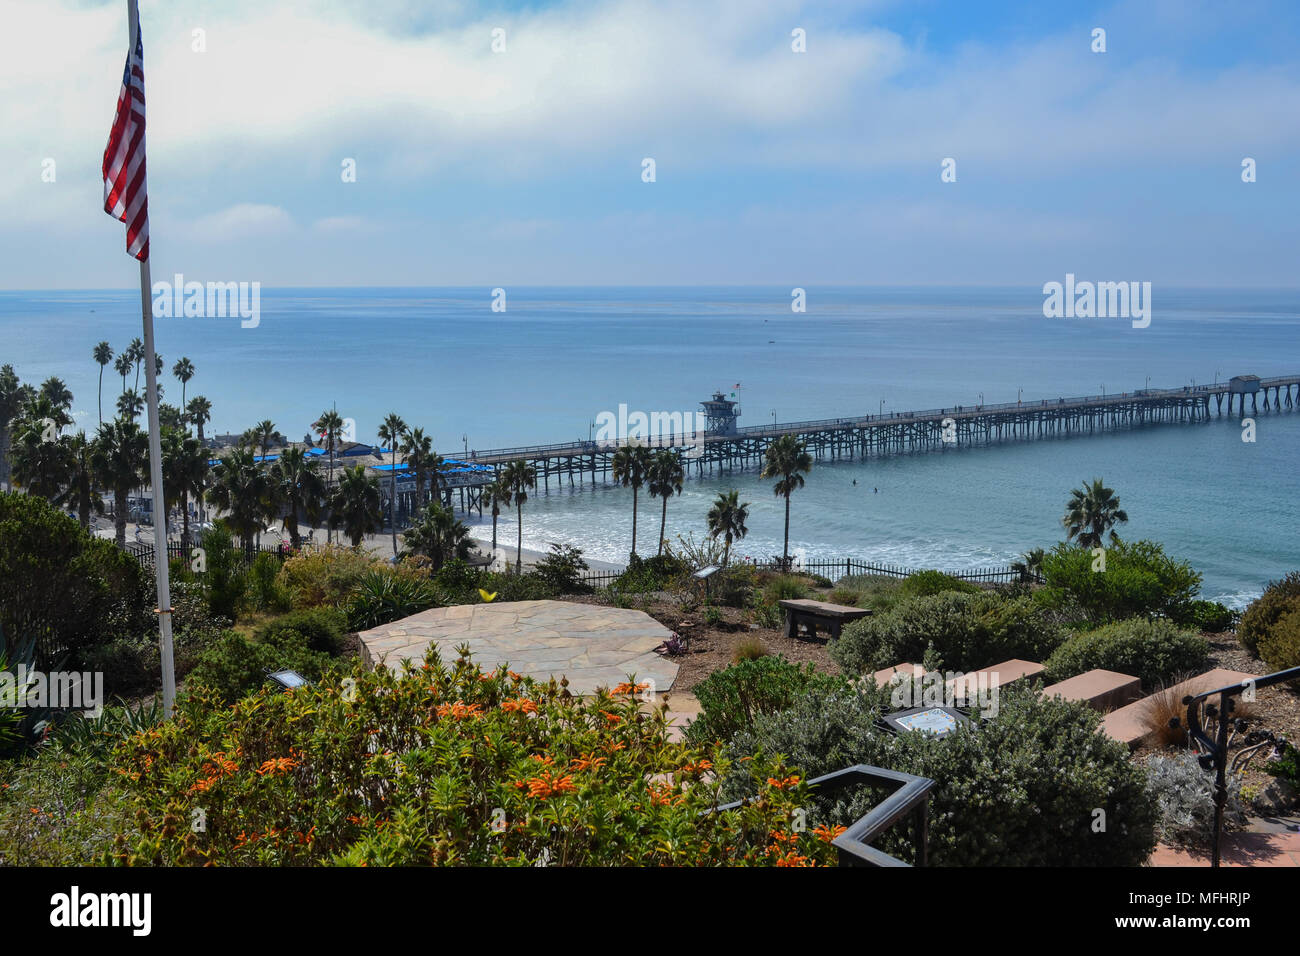 The San Clemente Pier in Southern California, Orange County as seen from Casa Romantica. Stock Photo